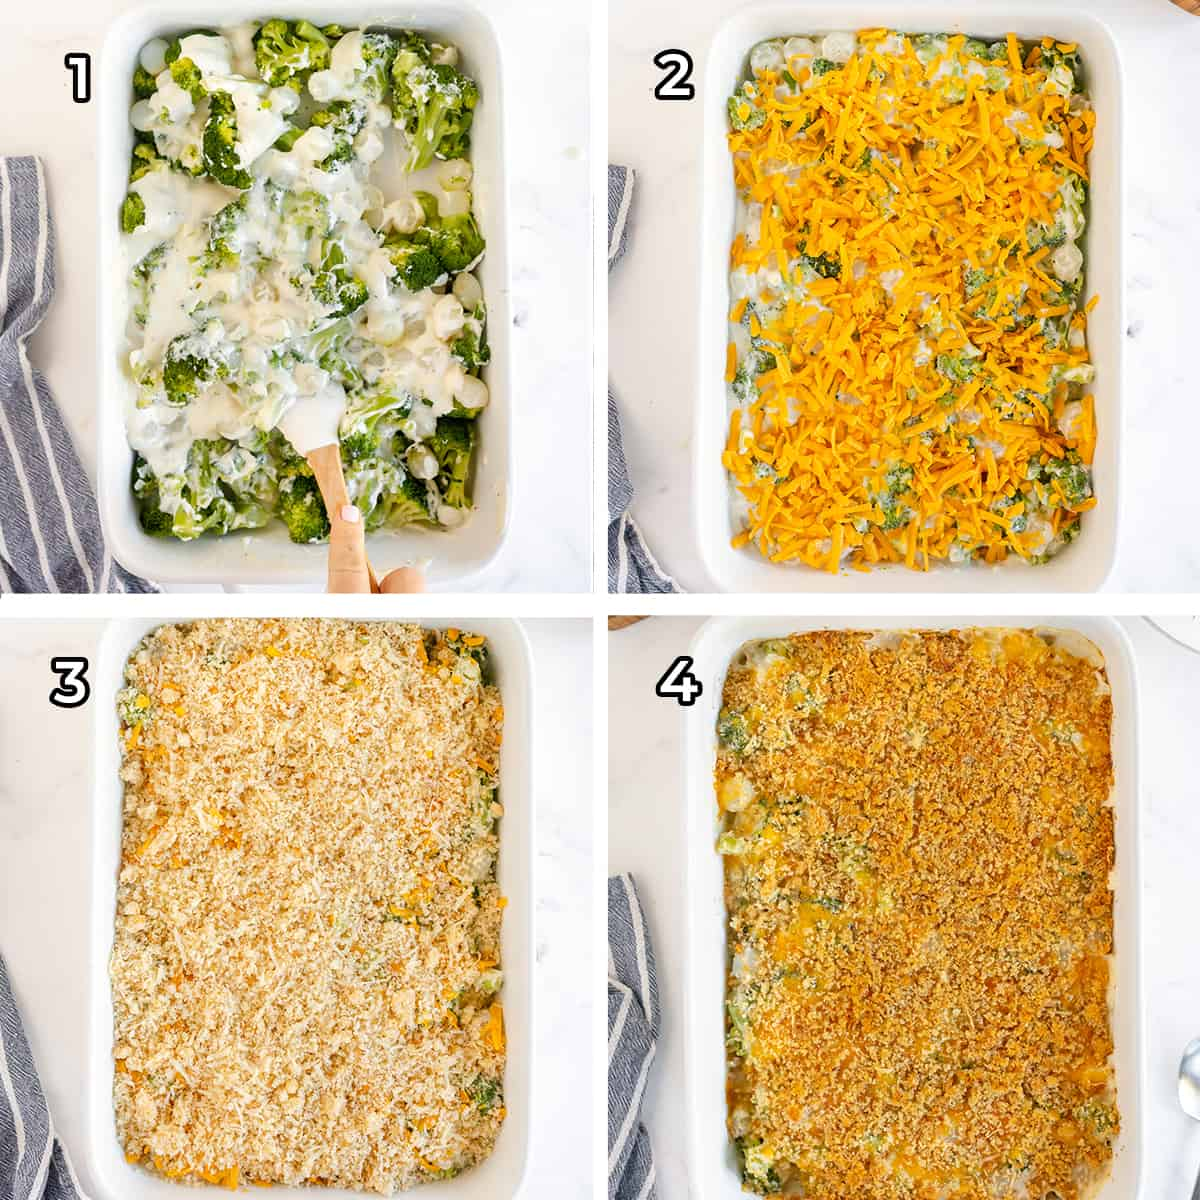 Broccoli and pearl onions mixed with a white sauce and topped with soft bread crumbs in a casserole dish.